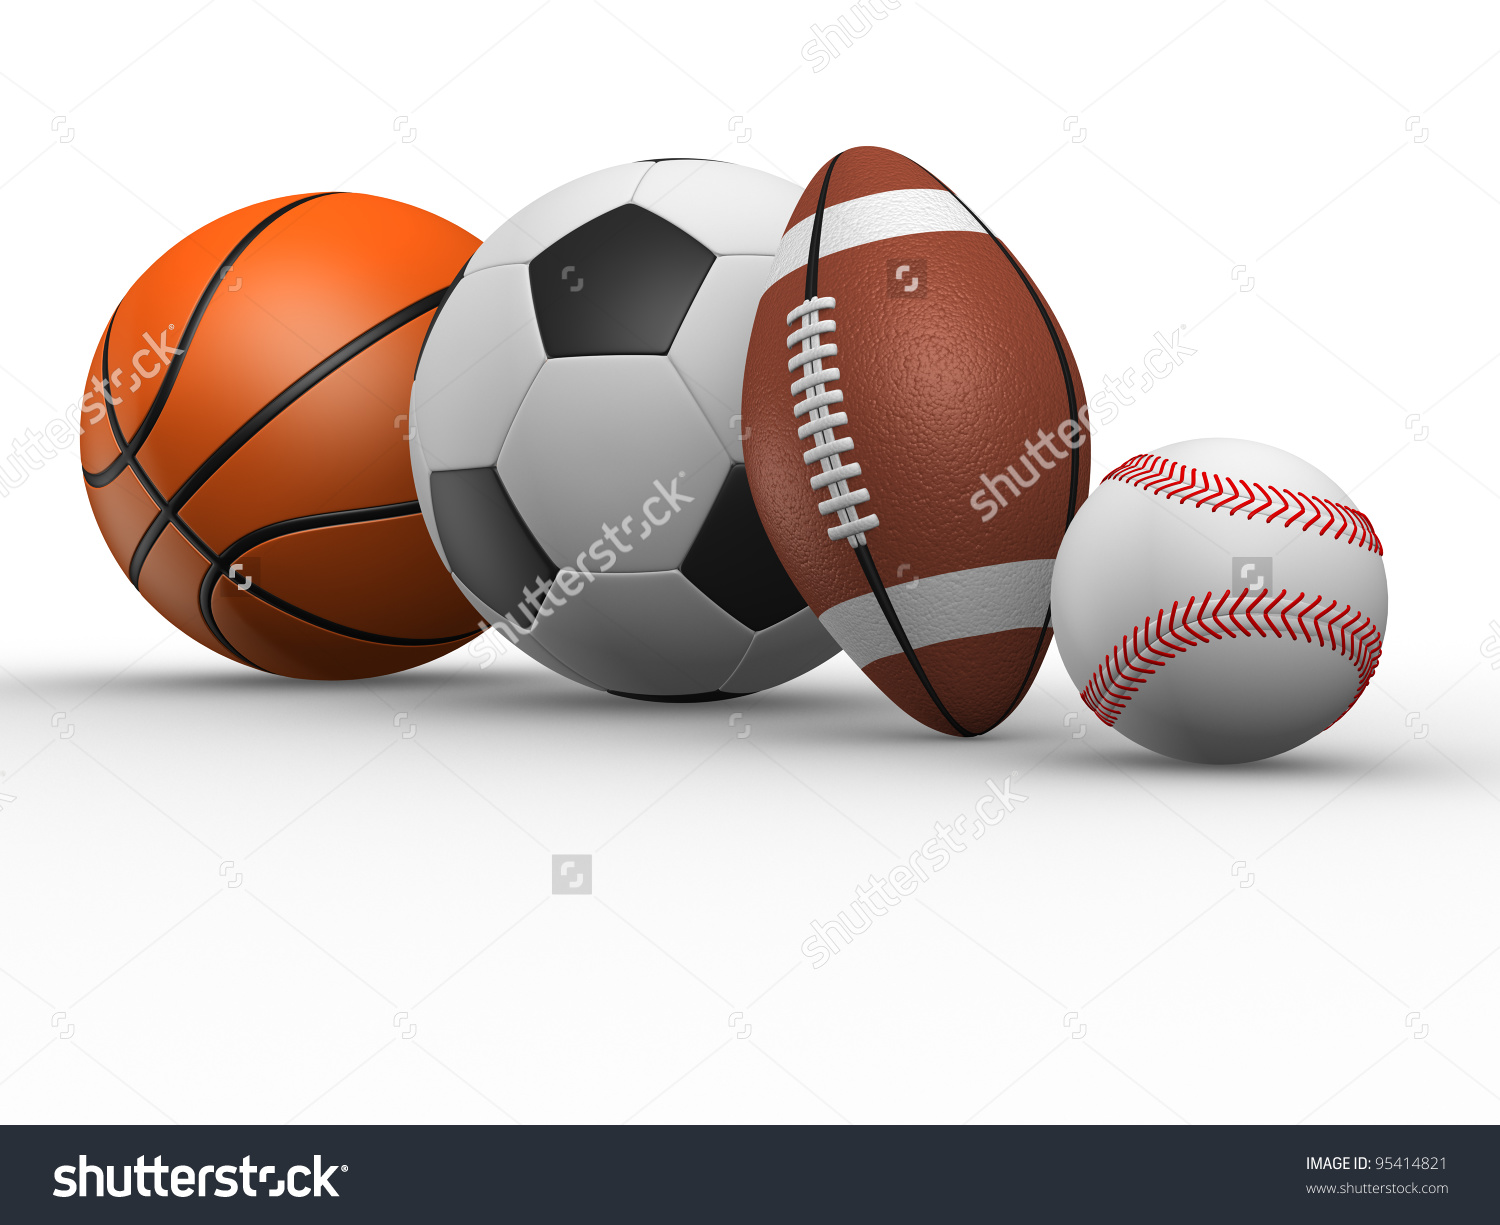 Football Rugby Baseball Basketball 3d Render Stock Illustration.